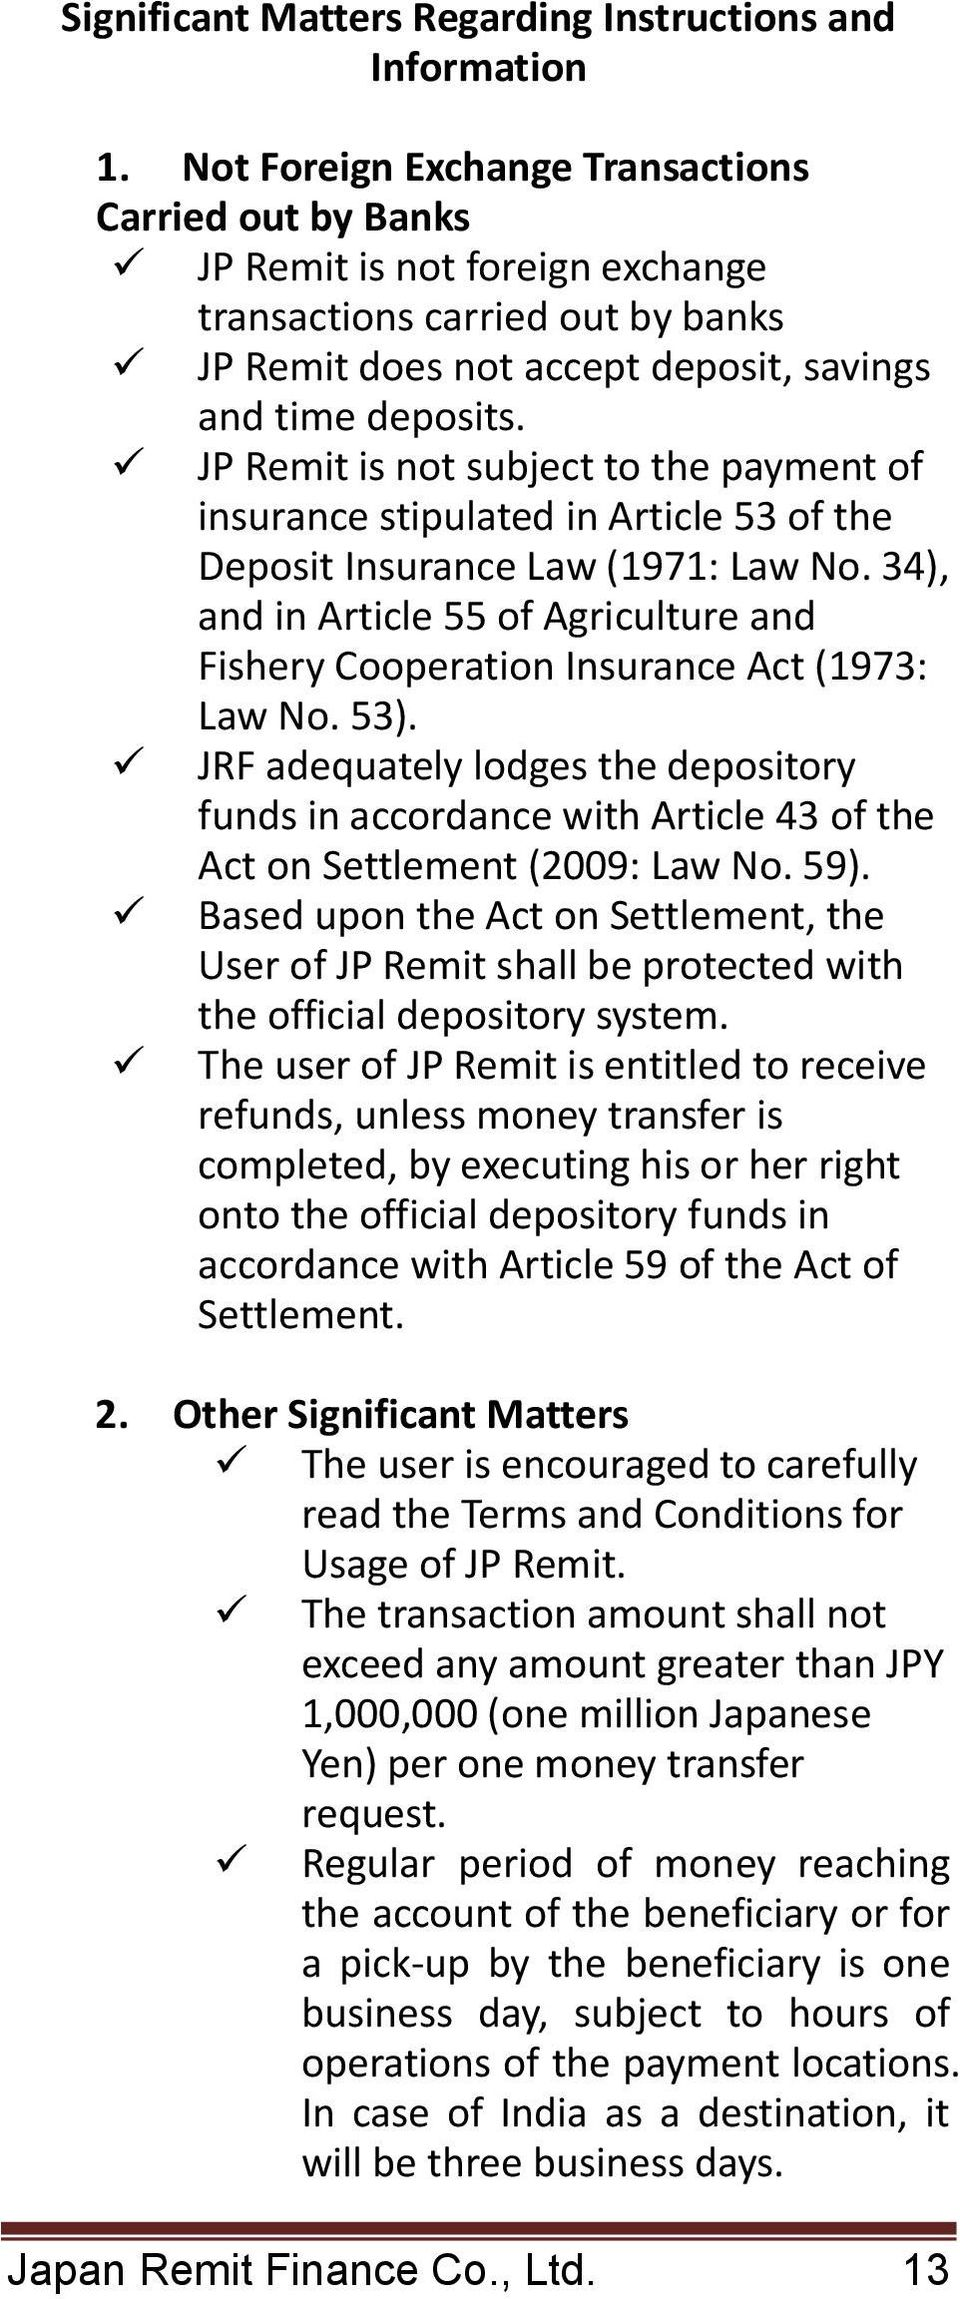 JP Remit is not subject to the payment of insurance stipulated in Article 53 of the Deposit Insurance Law (1971: Law No.